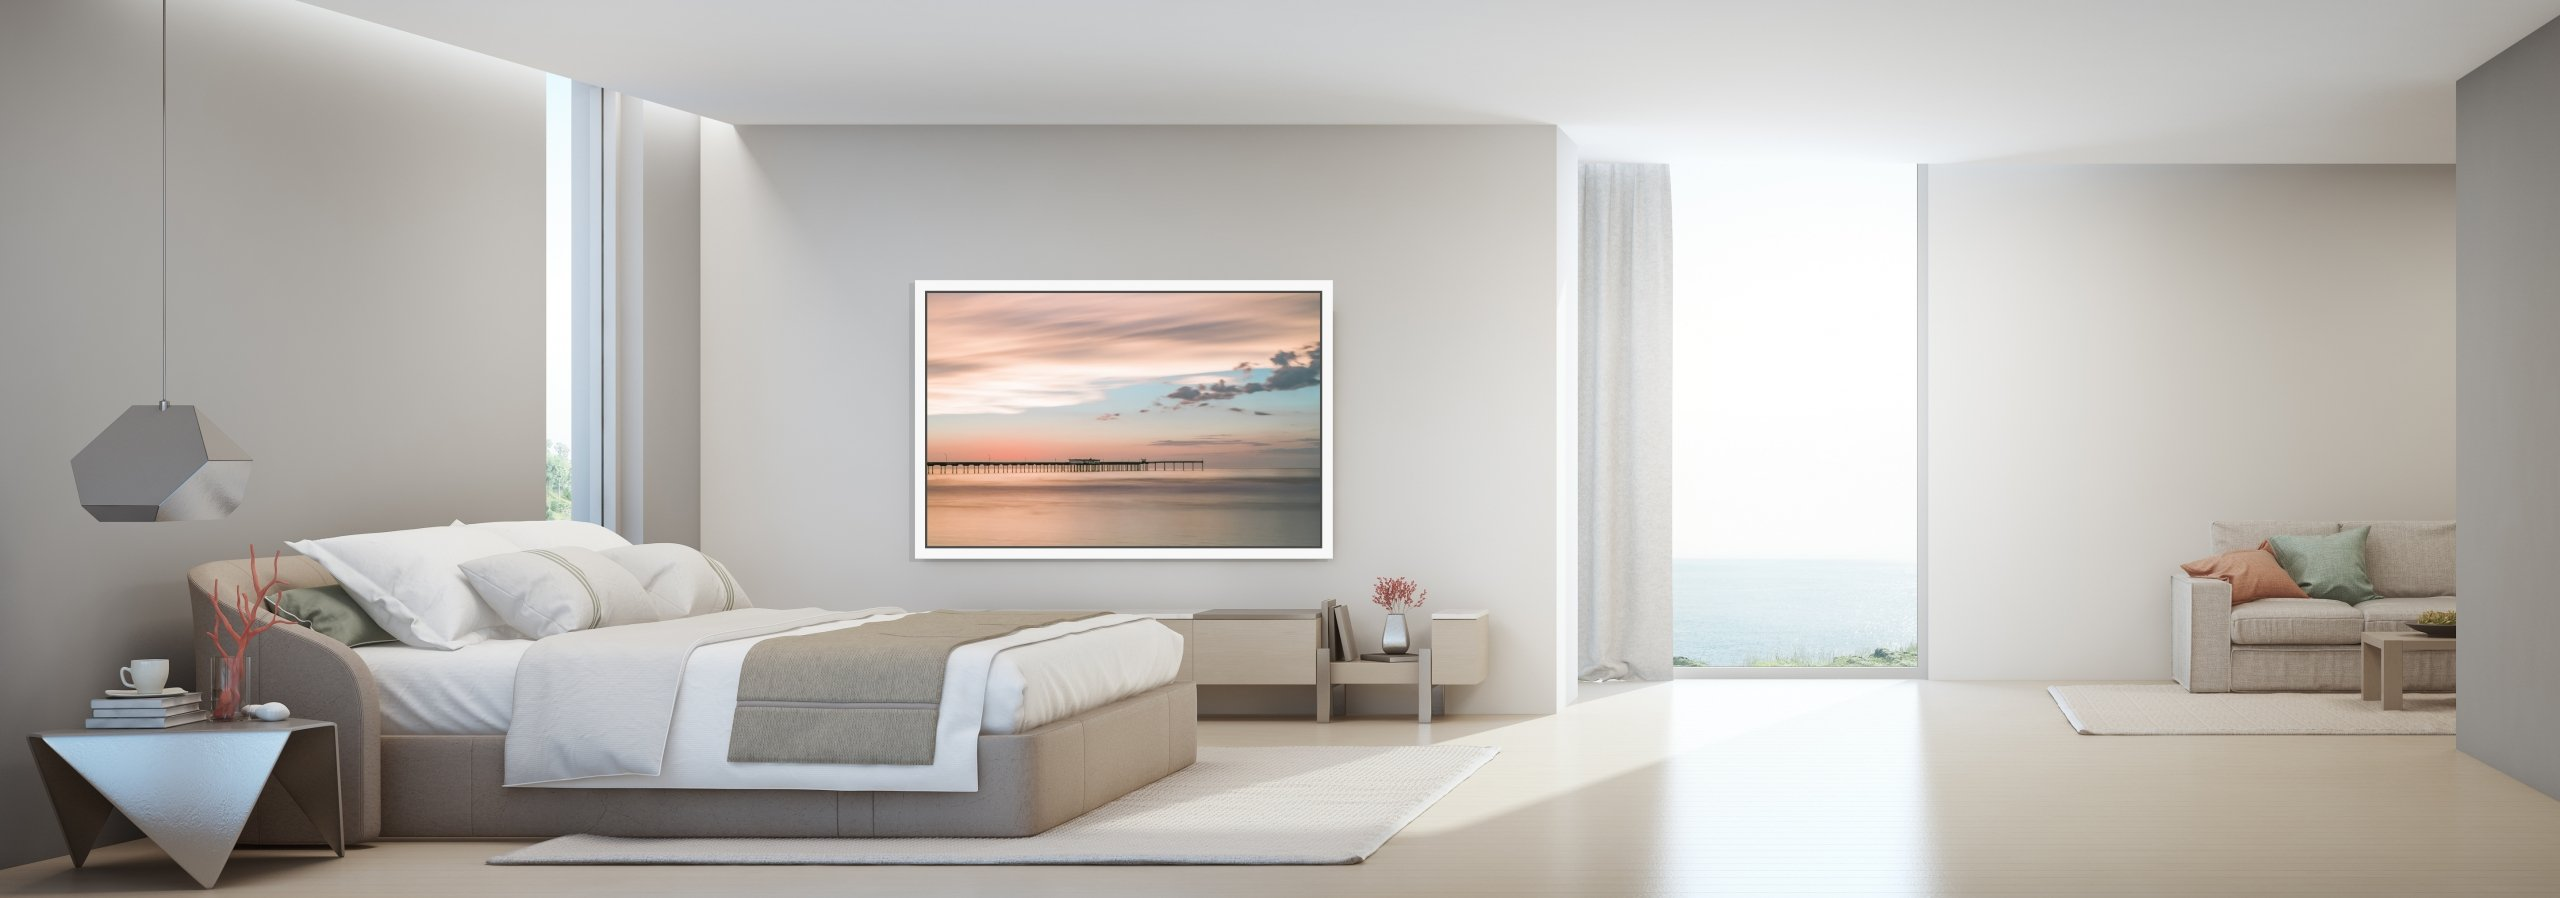 Coastal Fine Art For Home & Interior Design